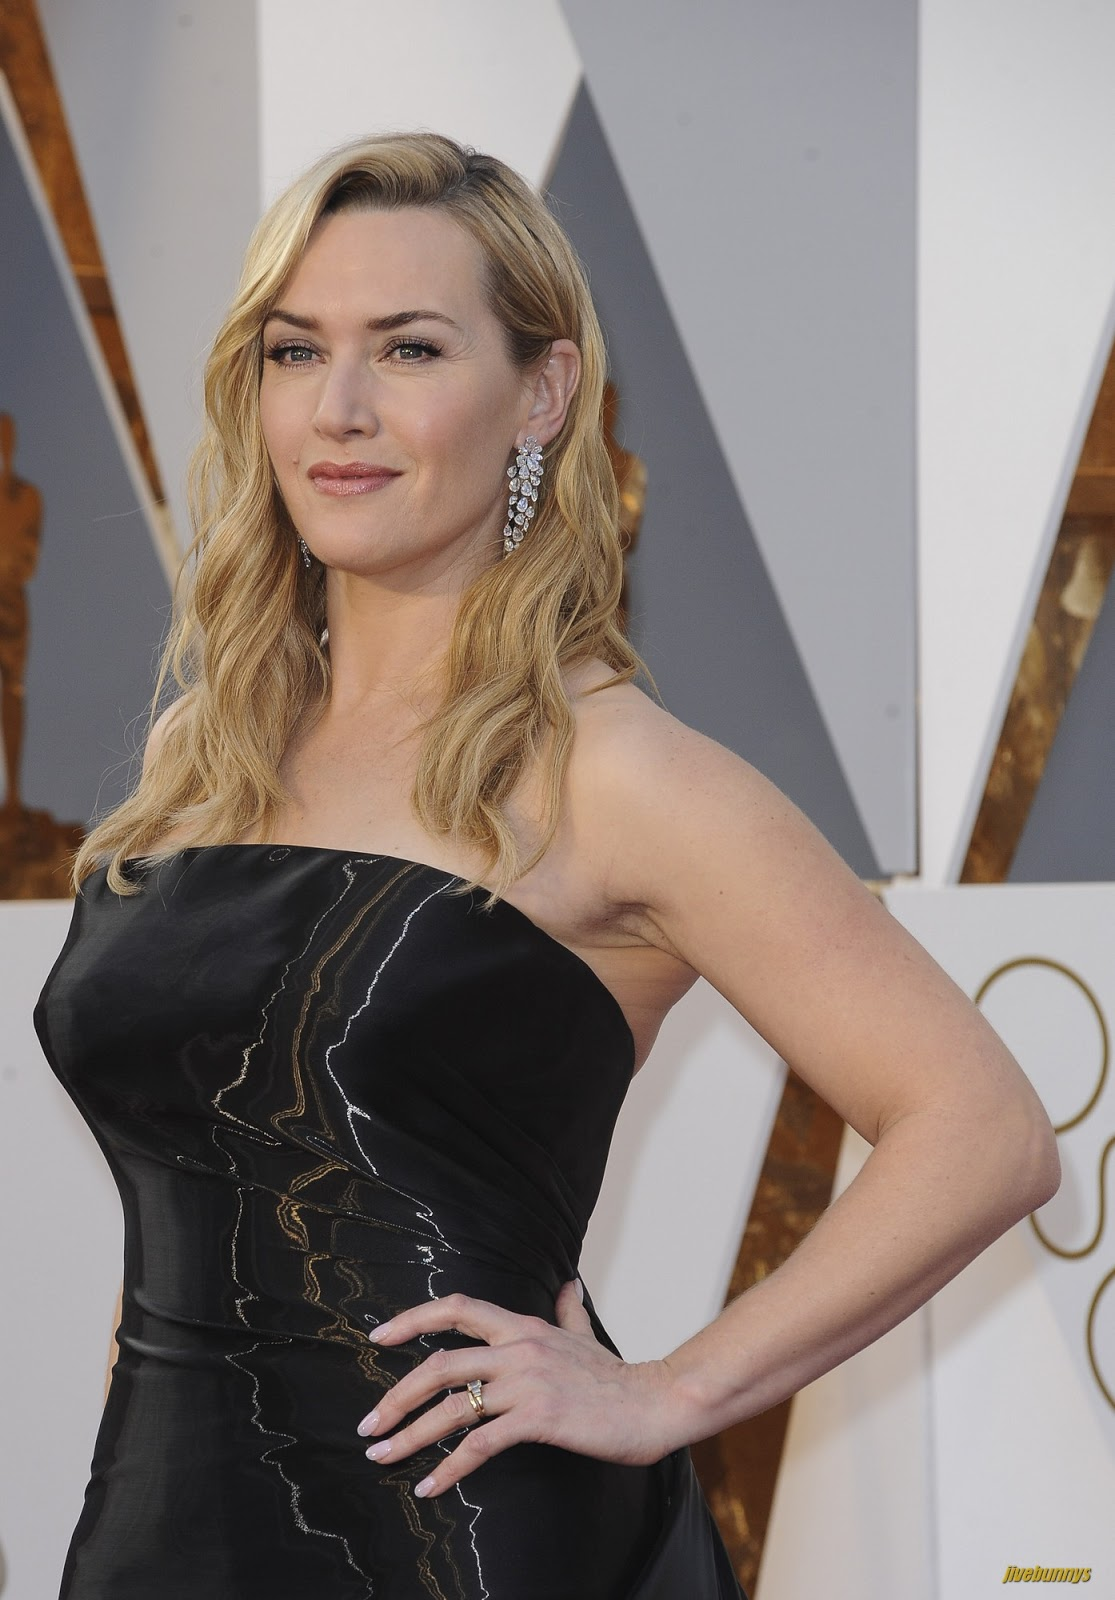 Jivebunnys Female Celebrity Picture Gallery: Kate Winslet ... Jennifer Aniston News